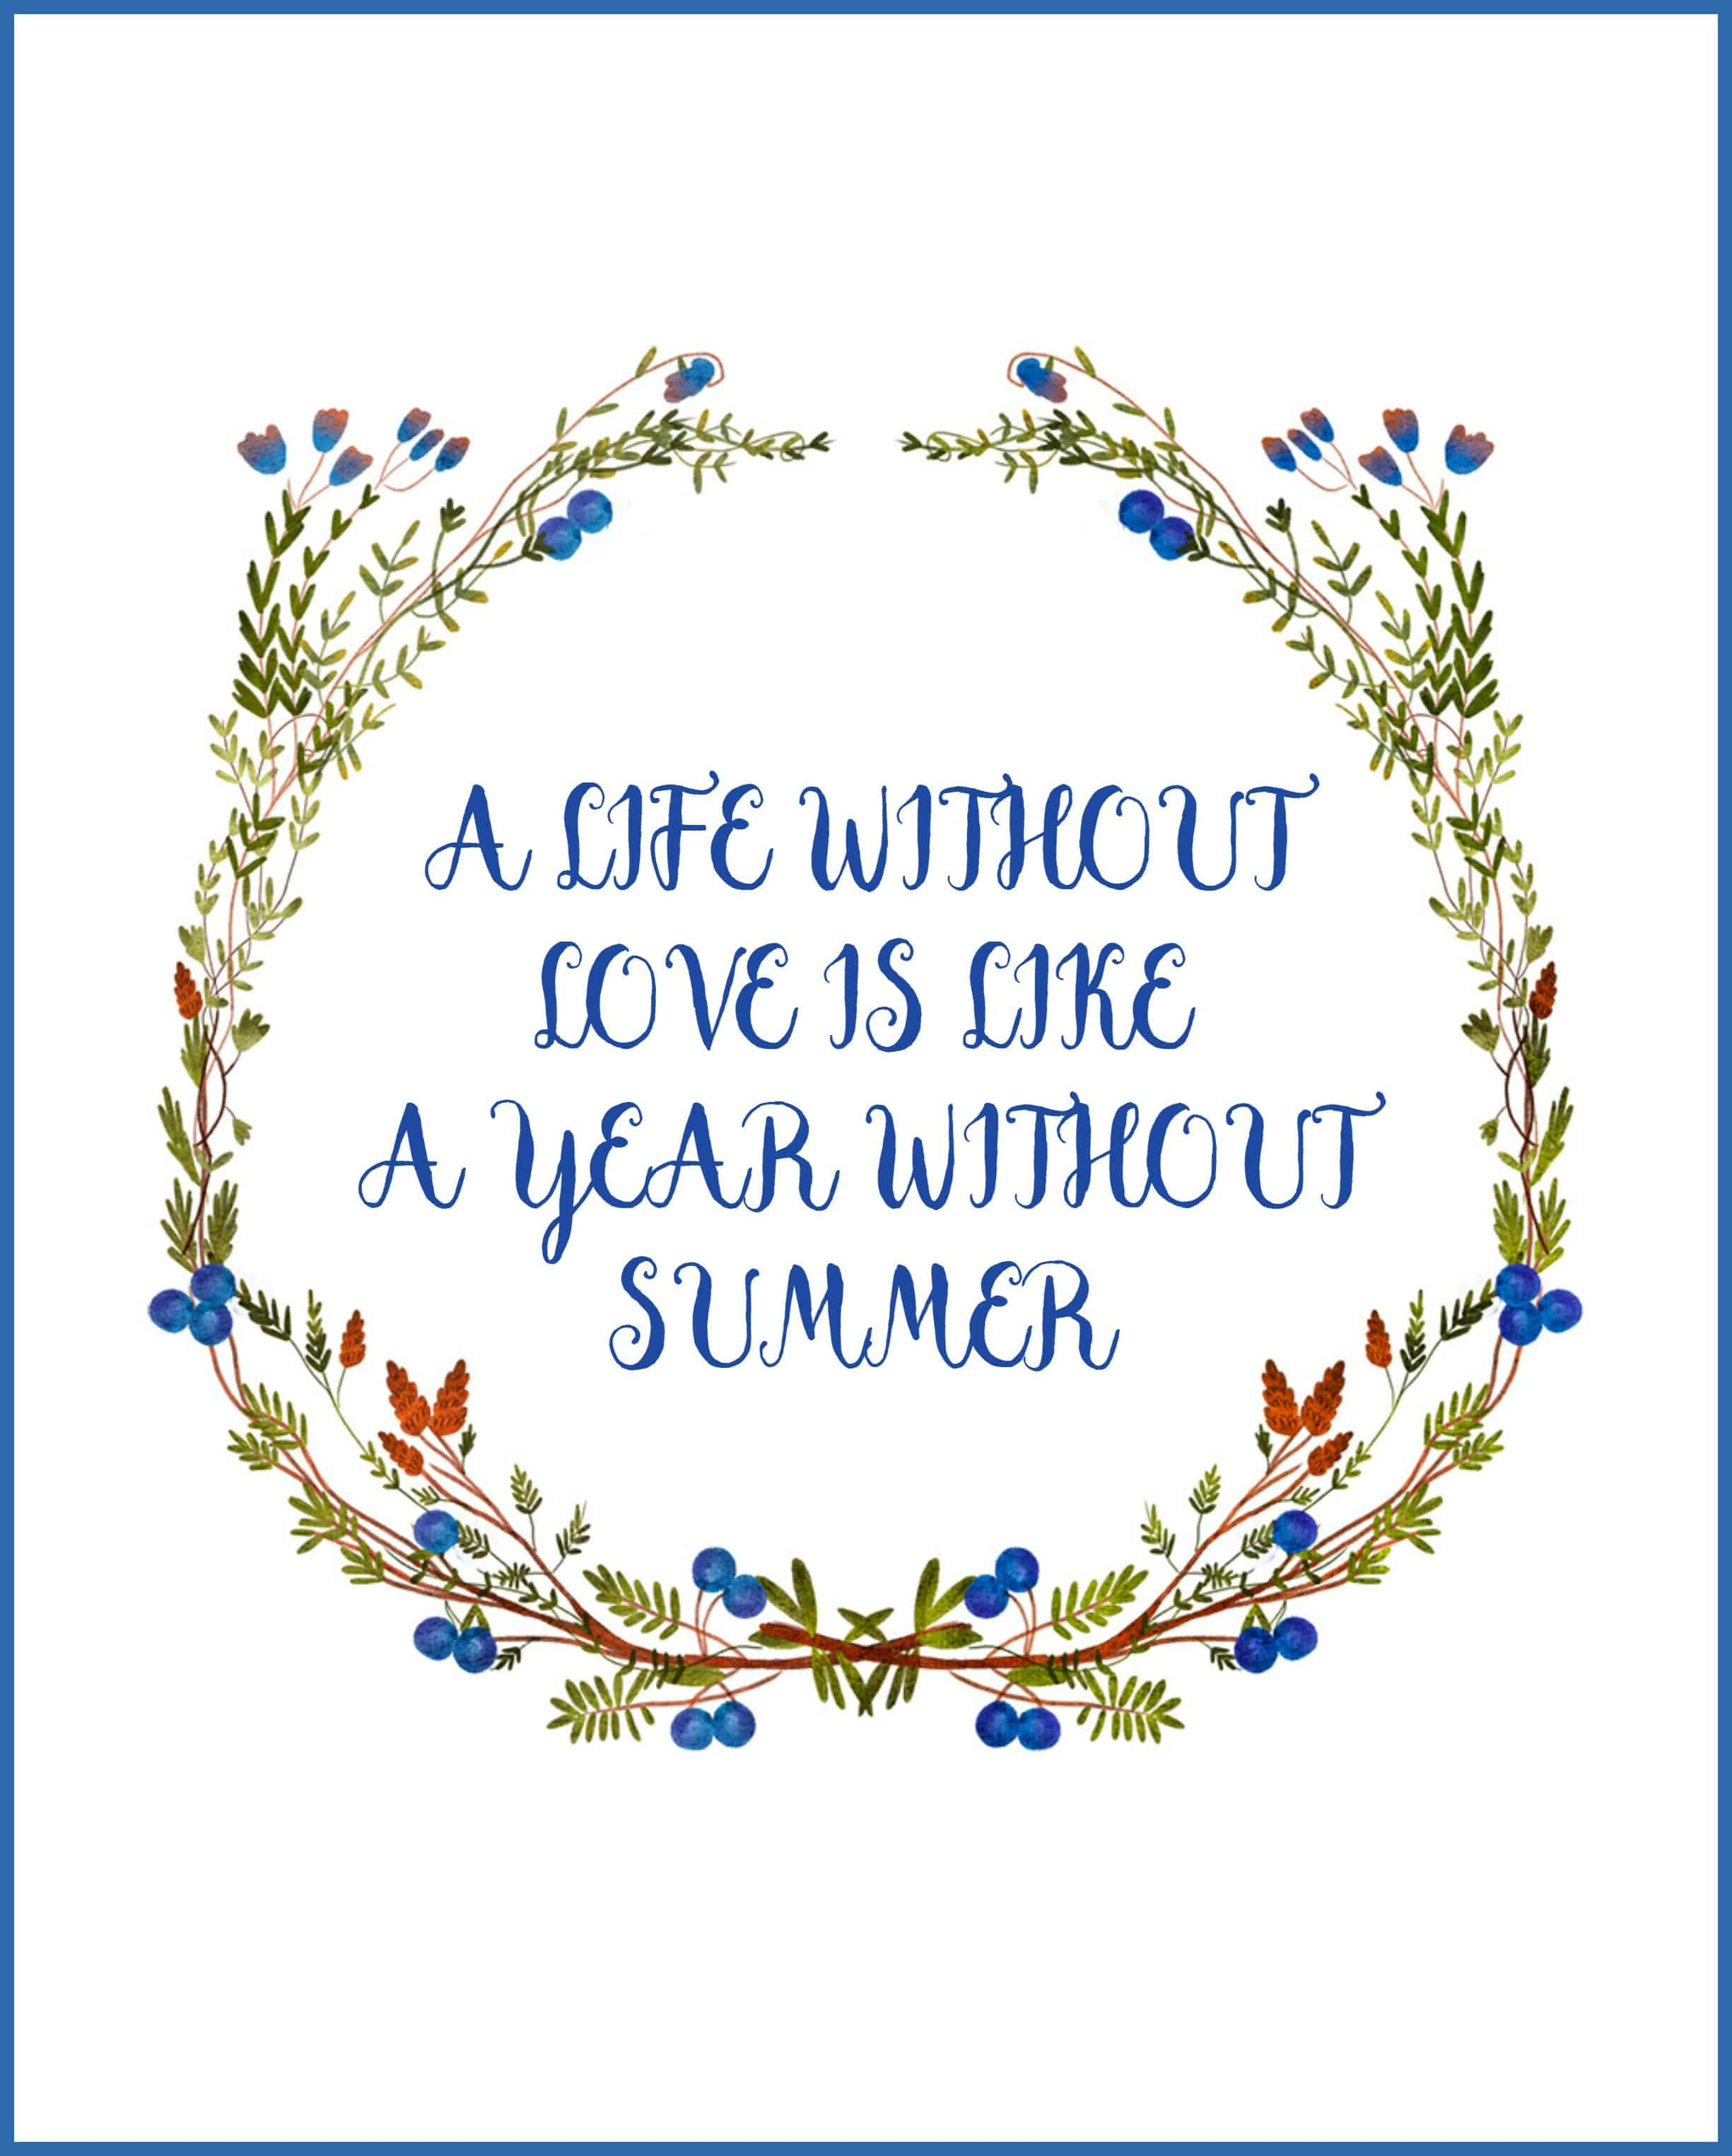 Enjoy summertime with this Free Summer Blueberry Wreath Printable that has vibrant colors and a fun quote. This is an 8 x 10 print.